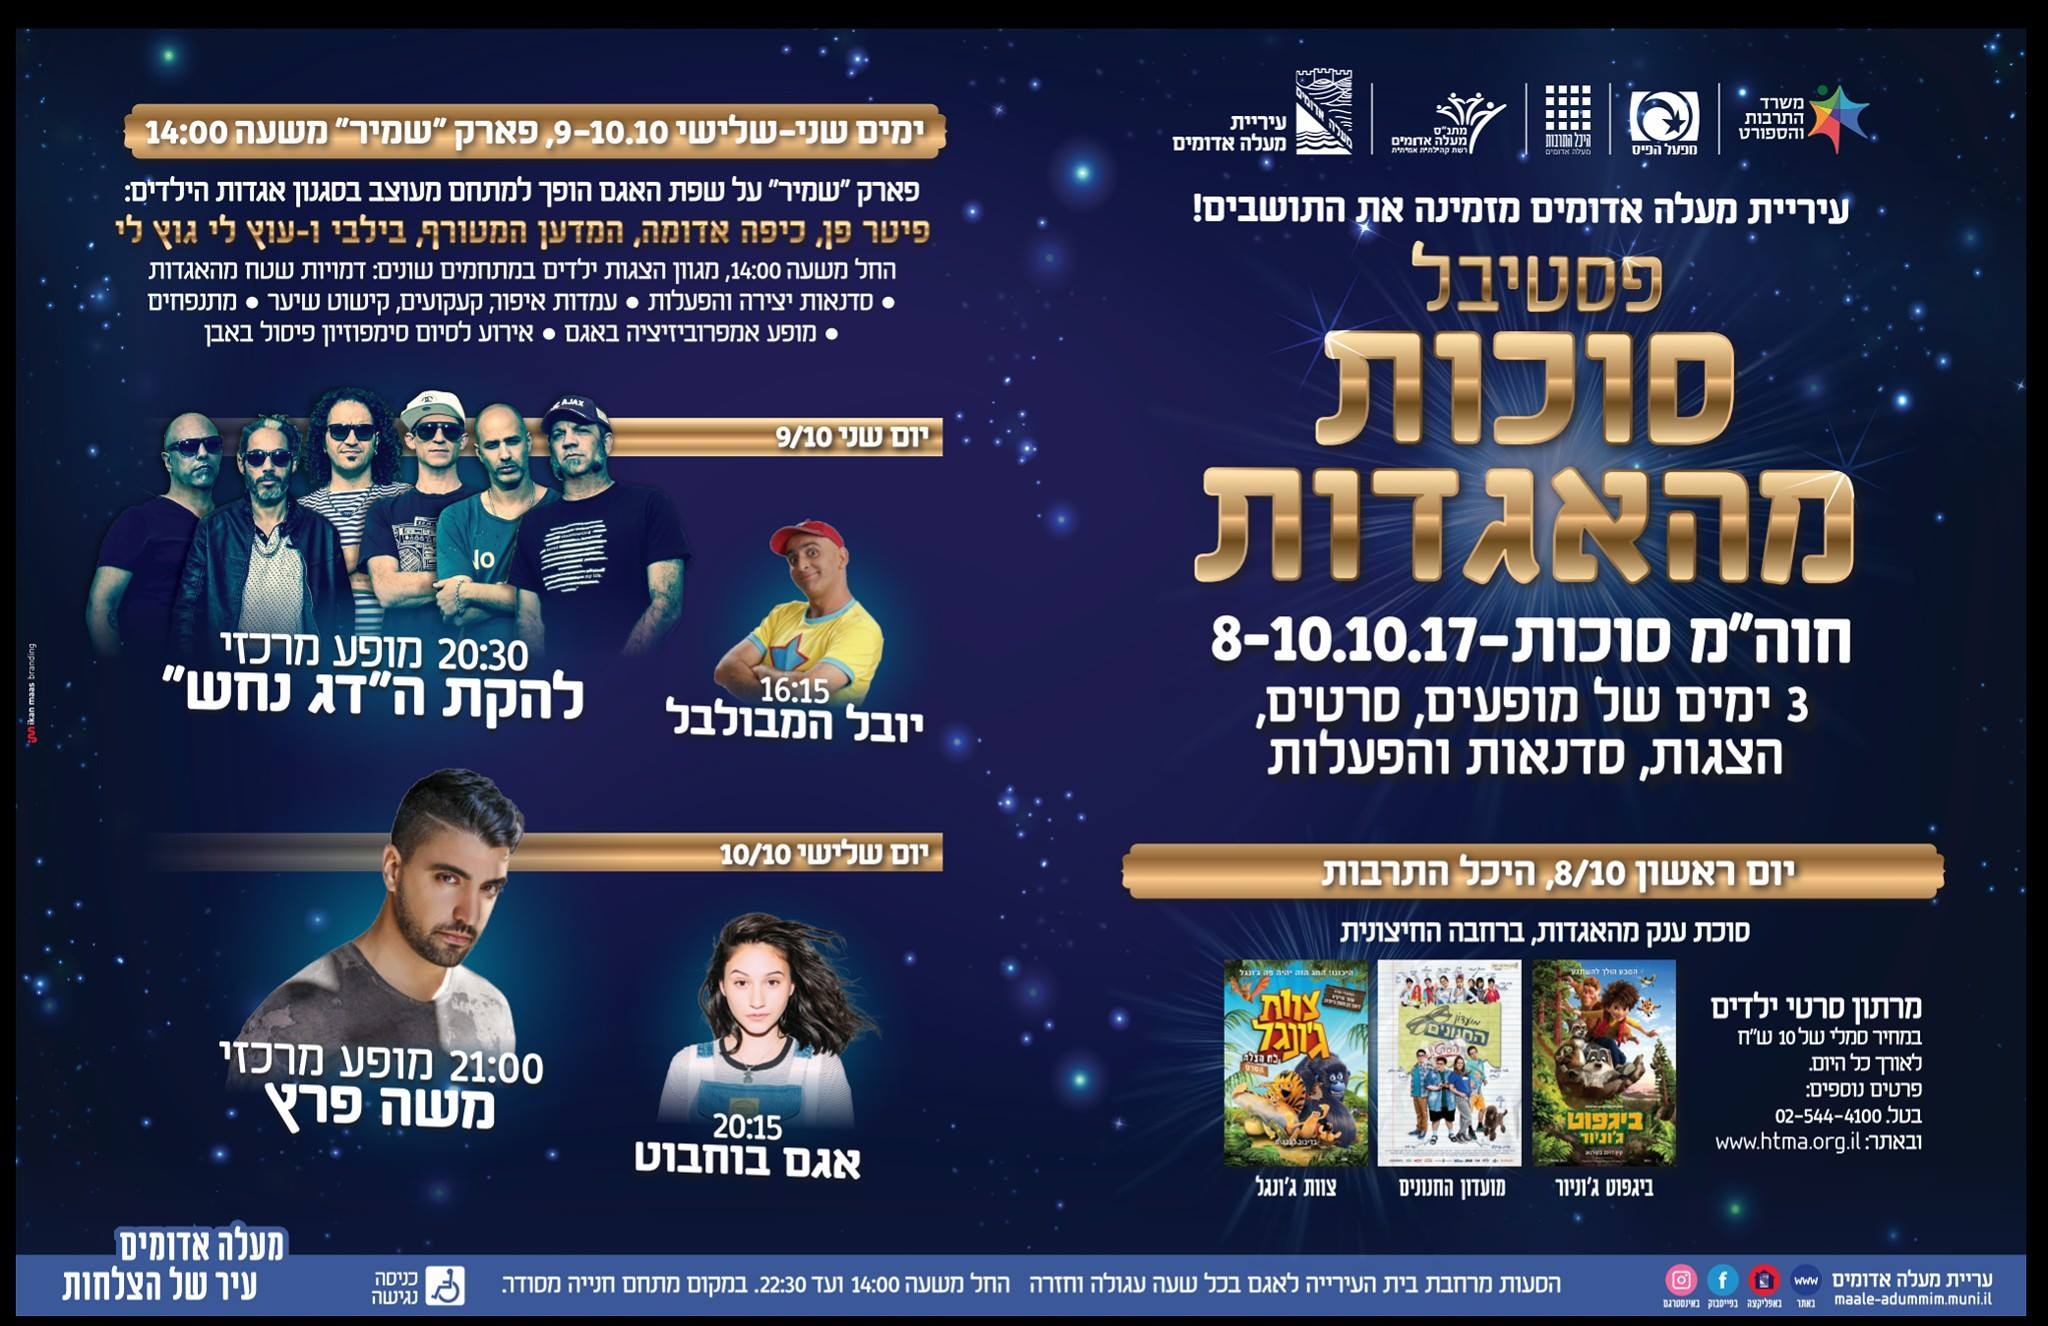 Ma'ale Adumim Sukkot Events 5778 / 2017